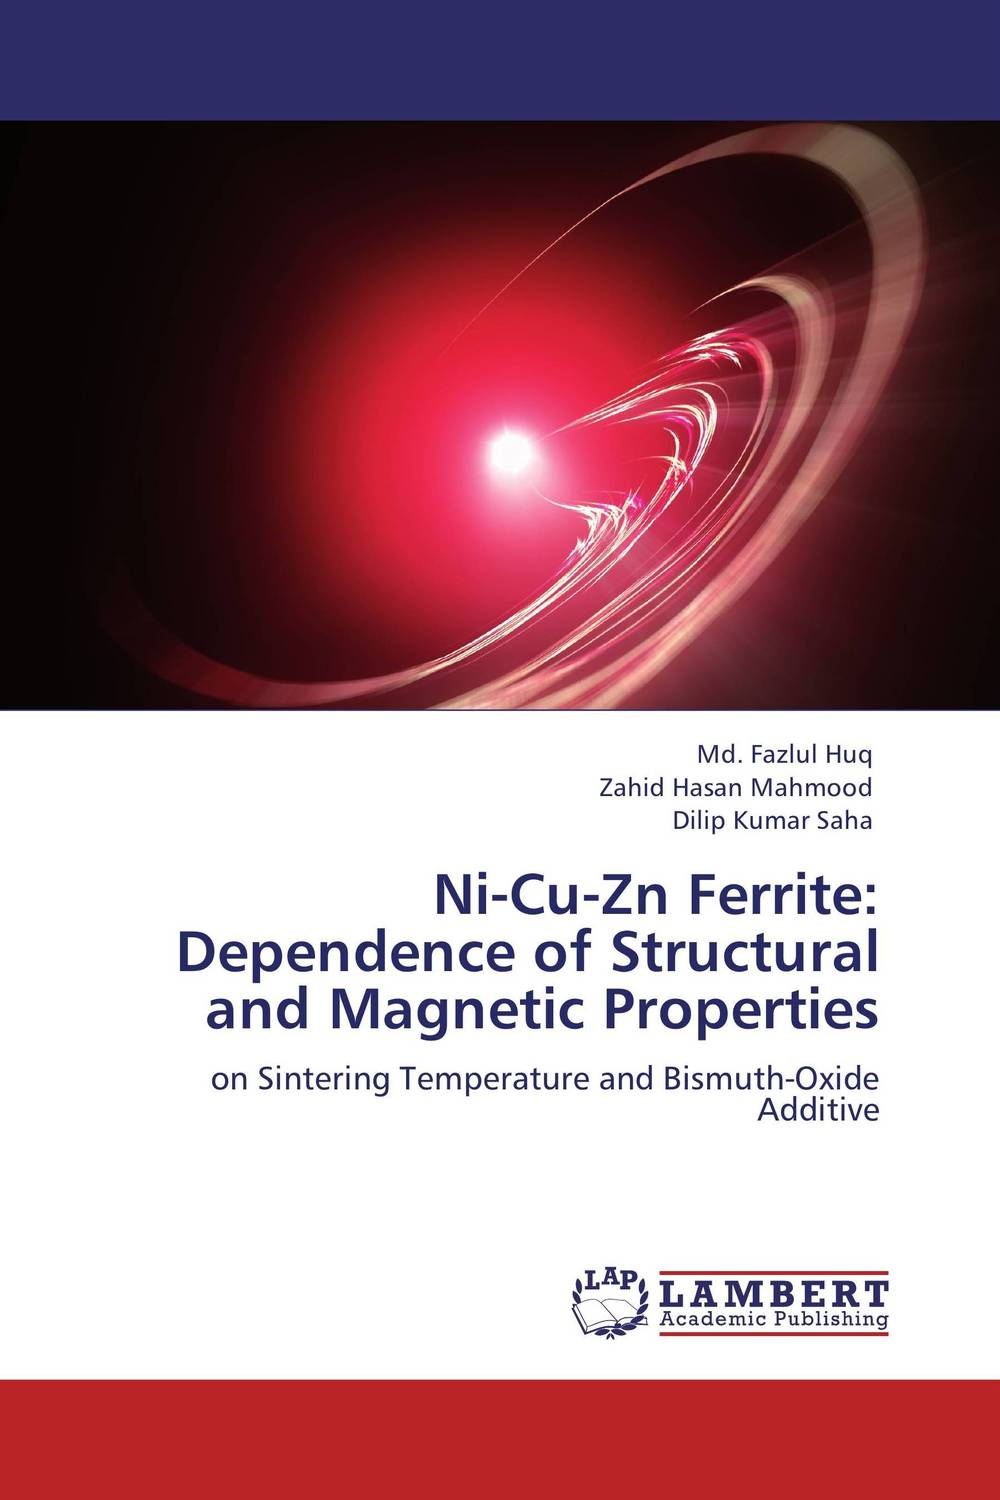 Ni-Cu-Zn Ferrite: Dependence of Structural and Magnetic Properties study of sn doped ni zn ferrites